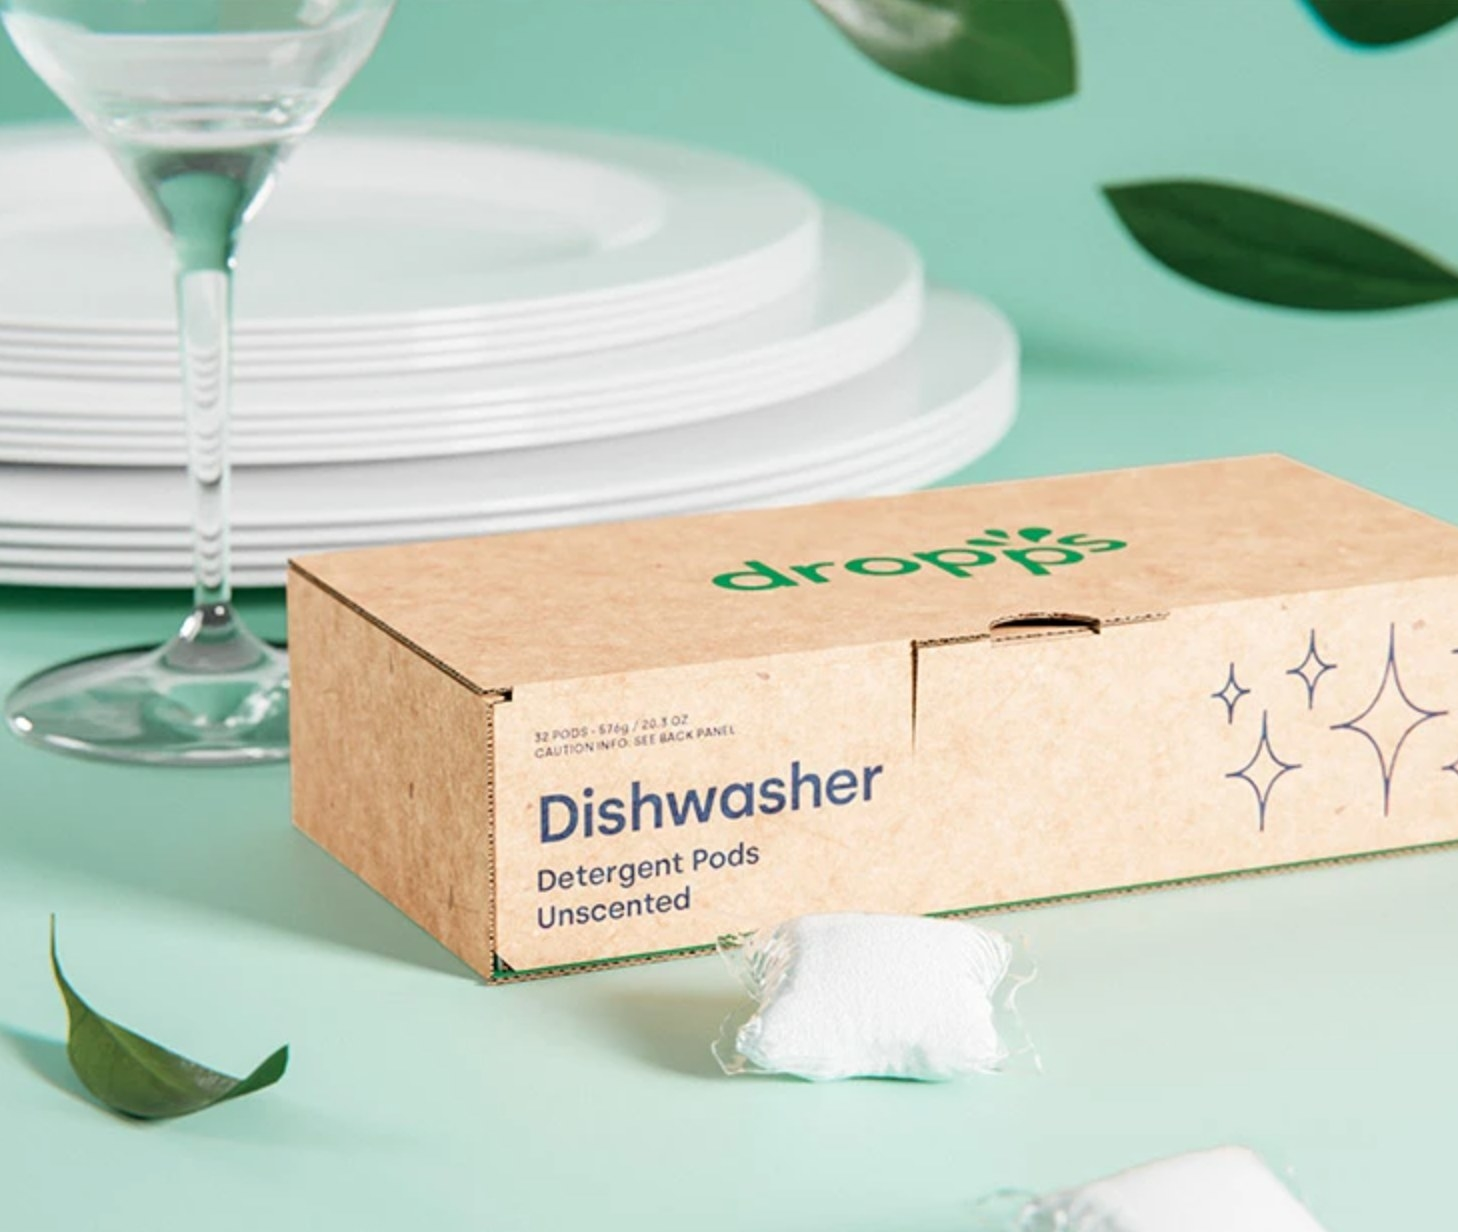 A compostable cardboard box that holds Dropps dishwasher pods.